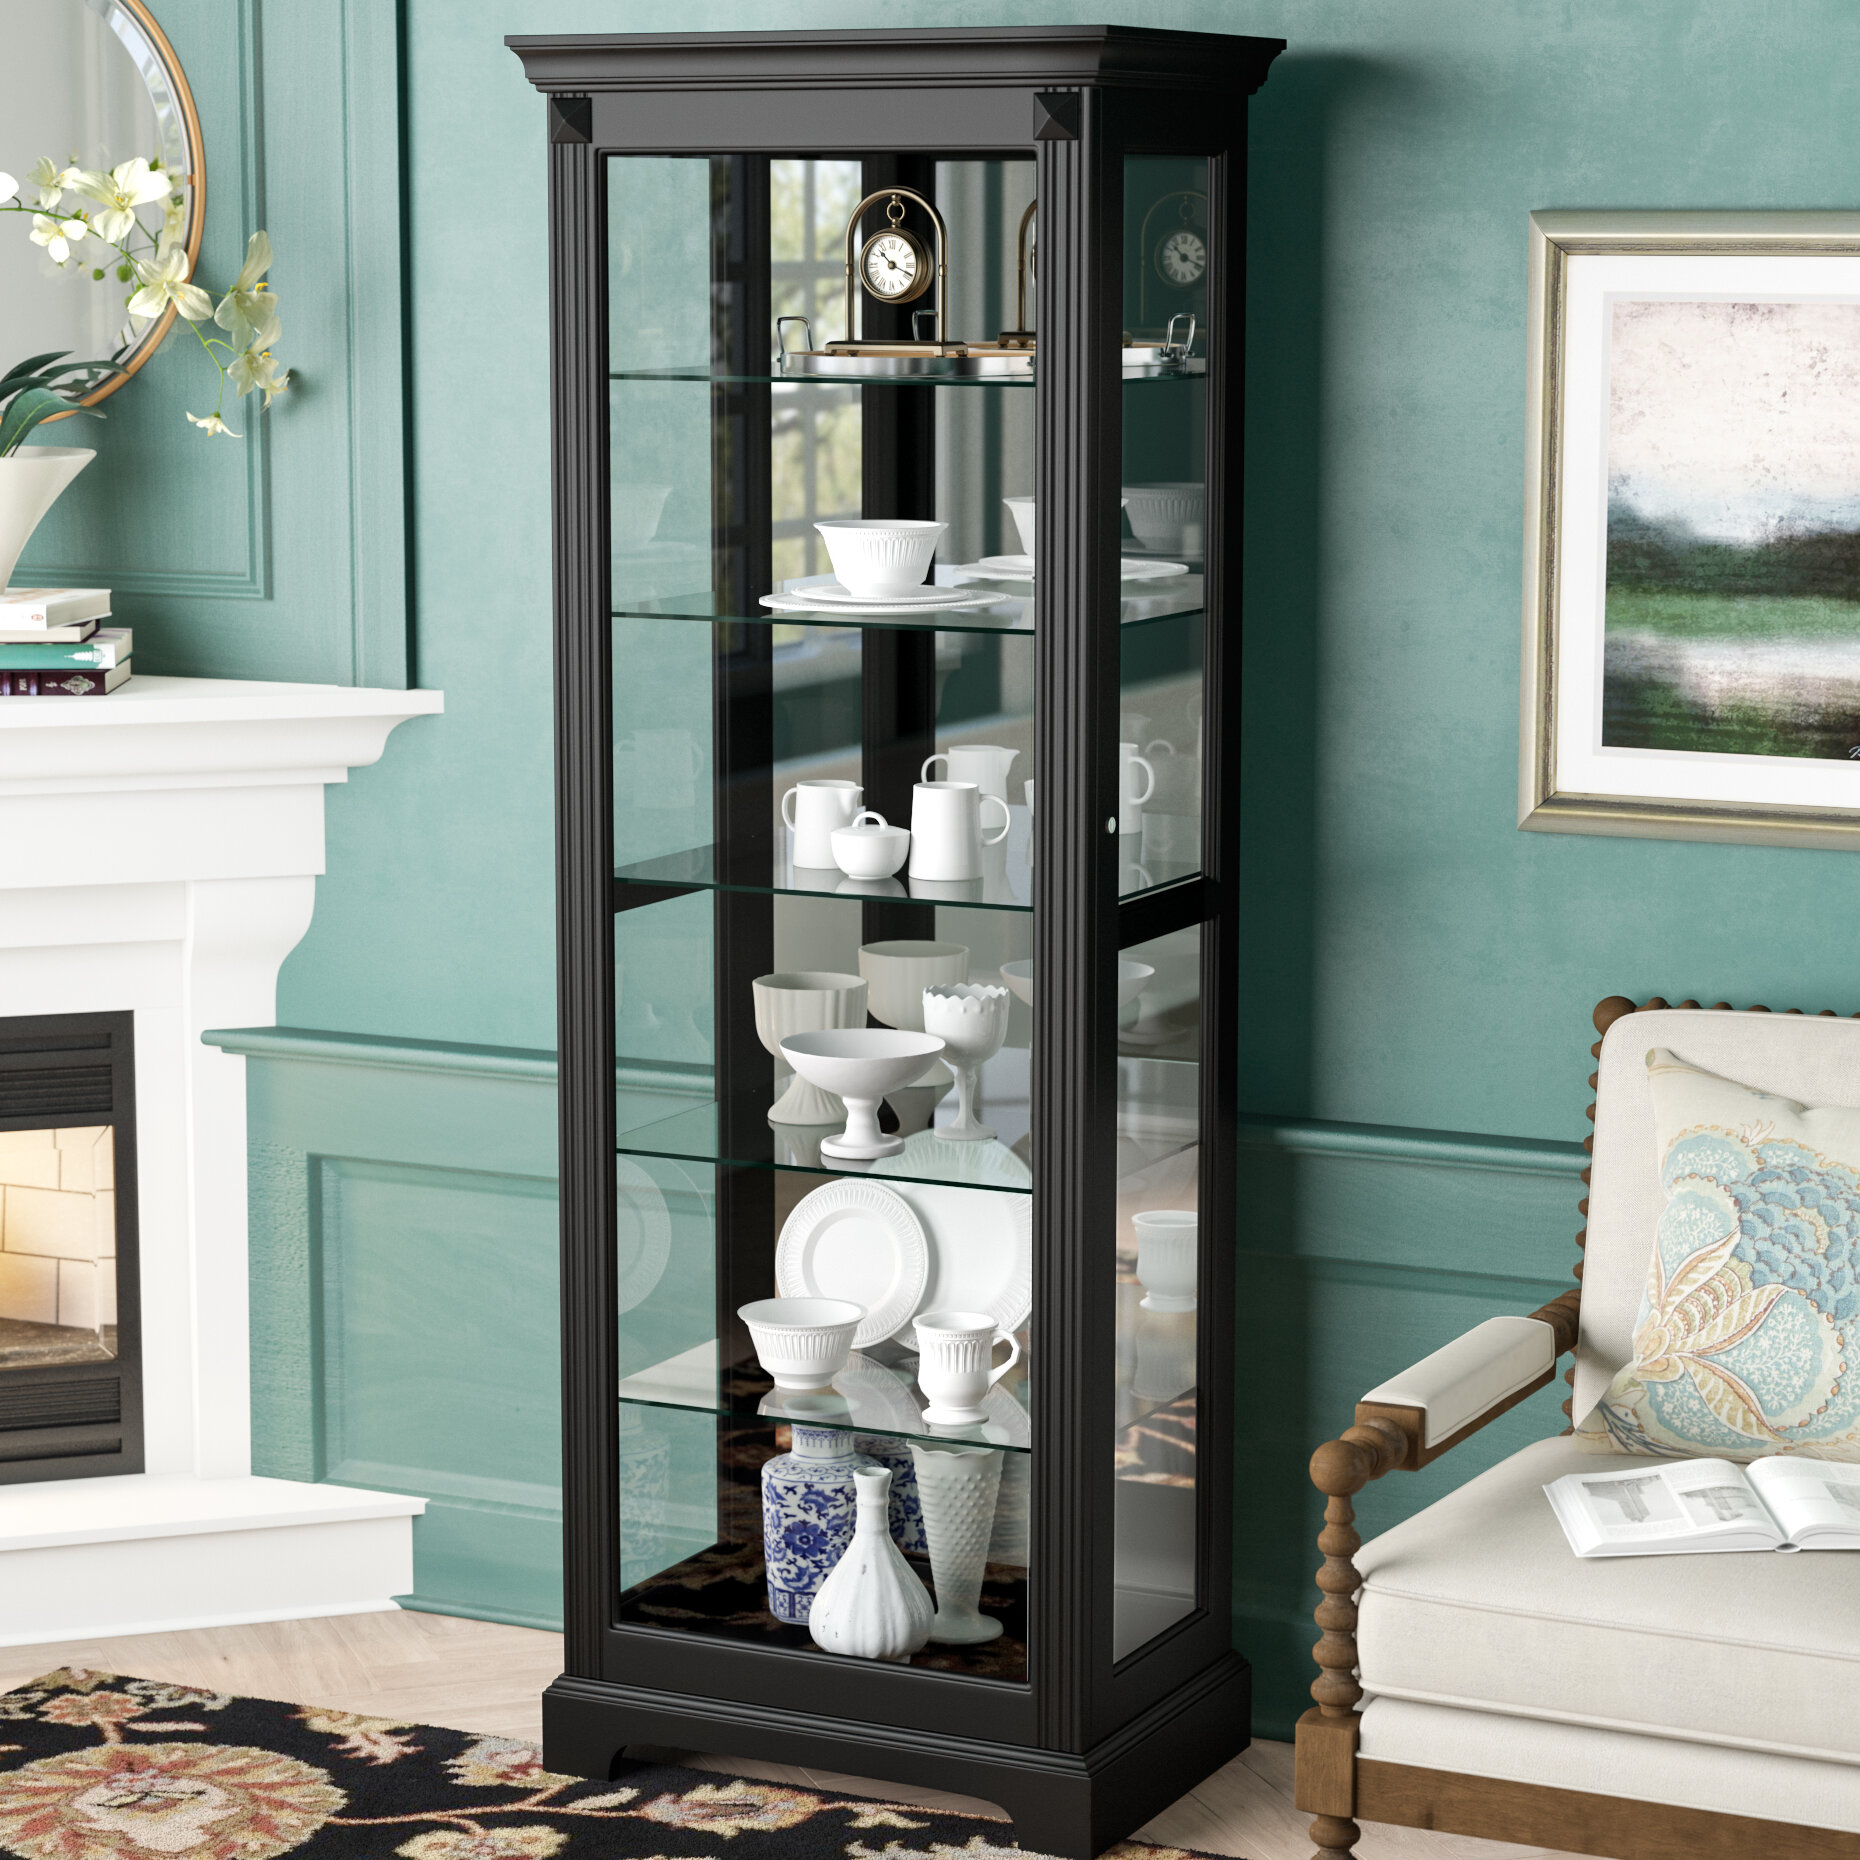 Darby Home Co Napier Lighted Curio Cabinet & Reviews | Wayfair